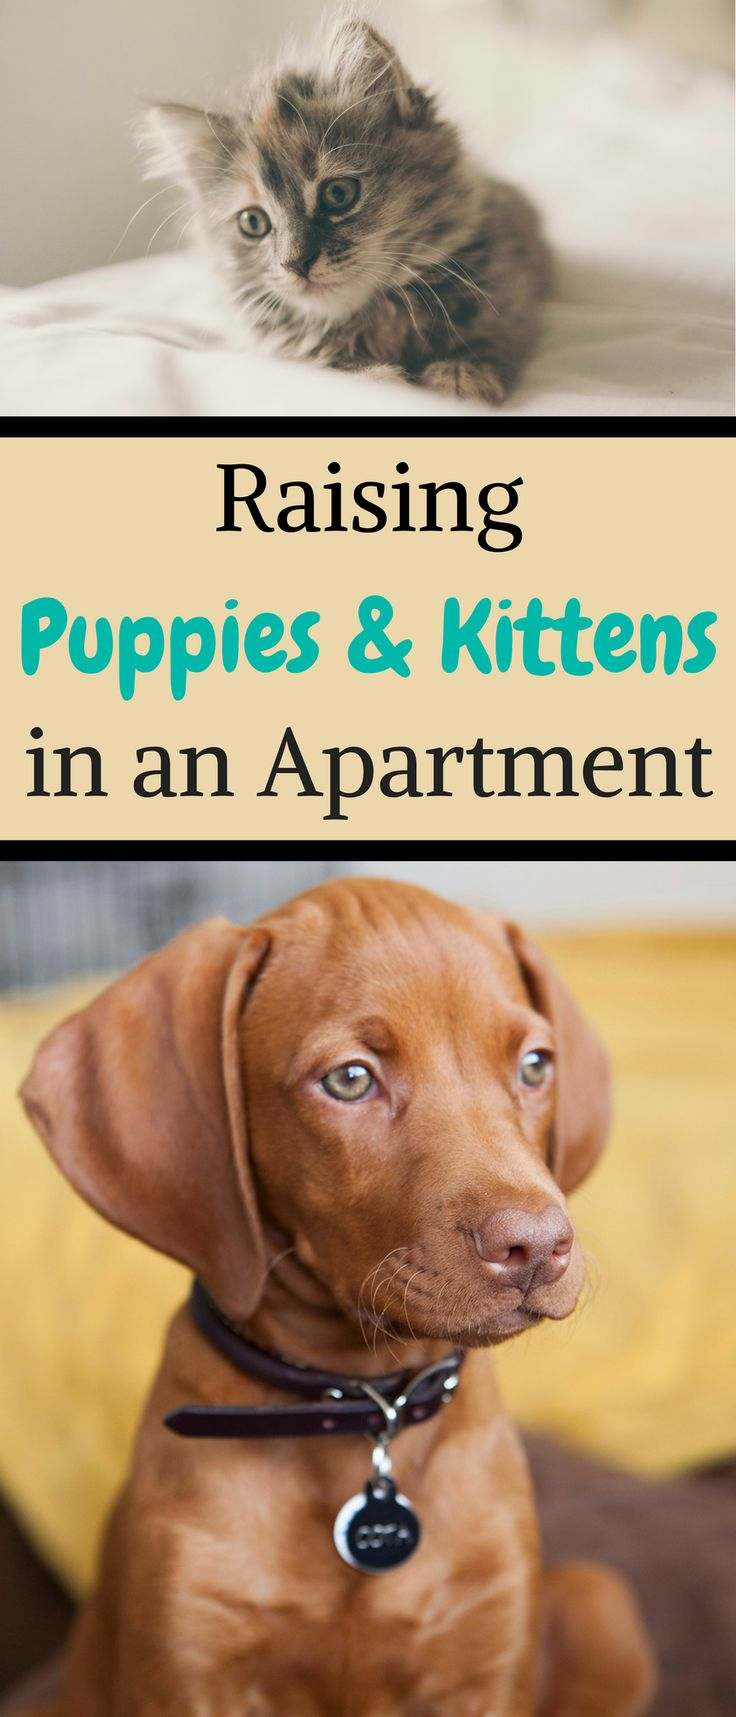 Recently get a puppy or kitten while you're living in an apartment? #puppy #kitten #apartmentliving